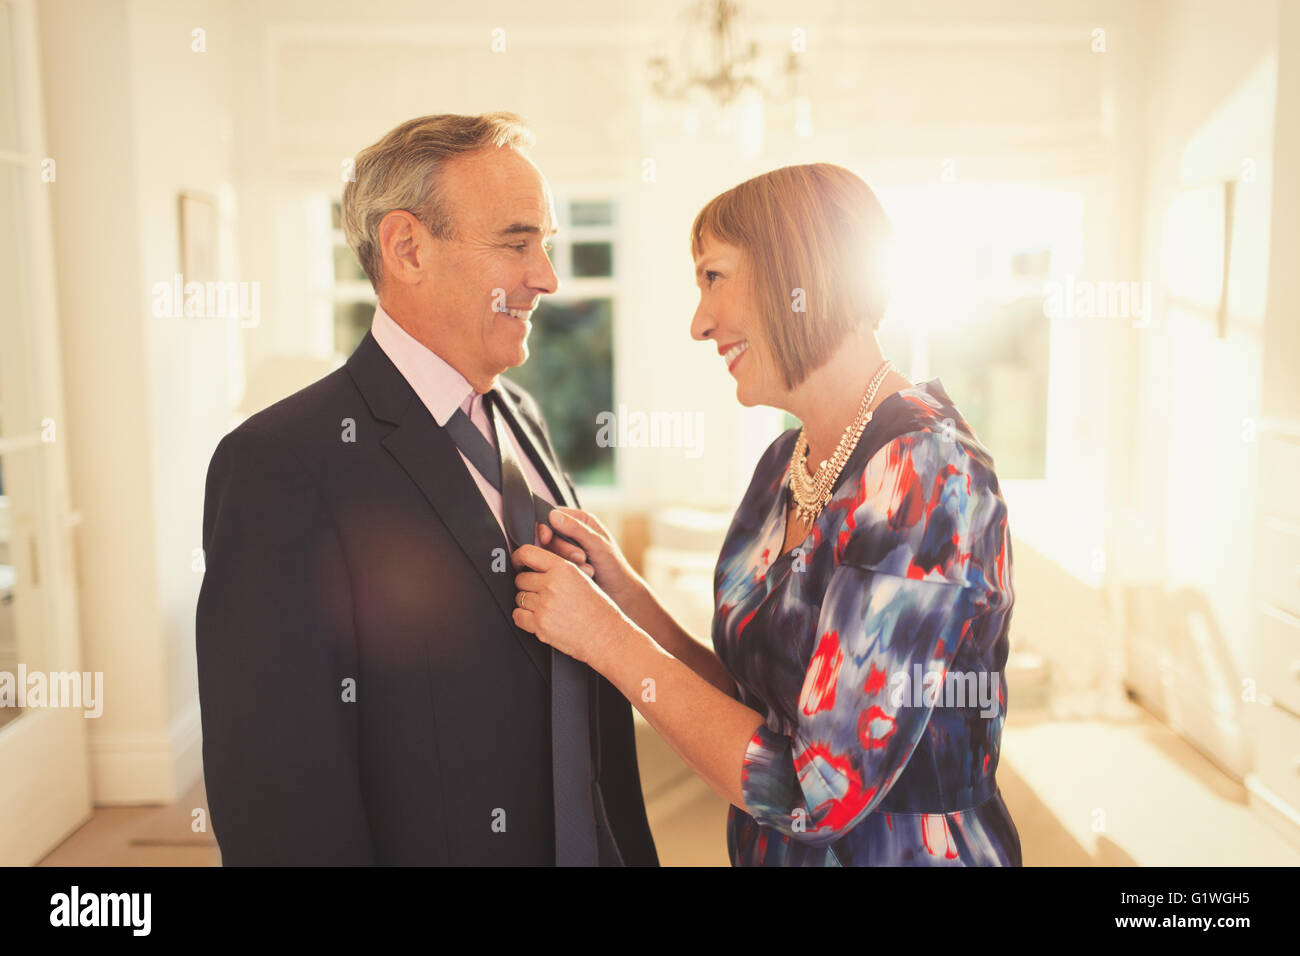 Smiling wife tying husband's tie - Stock Image